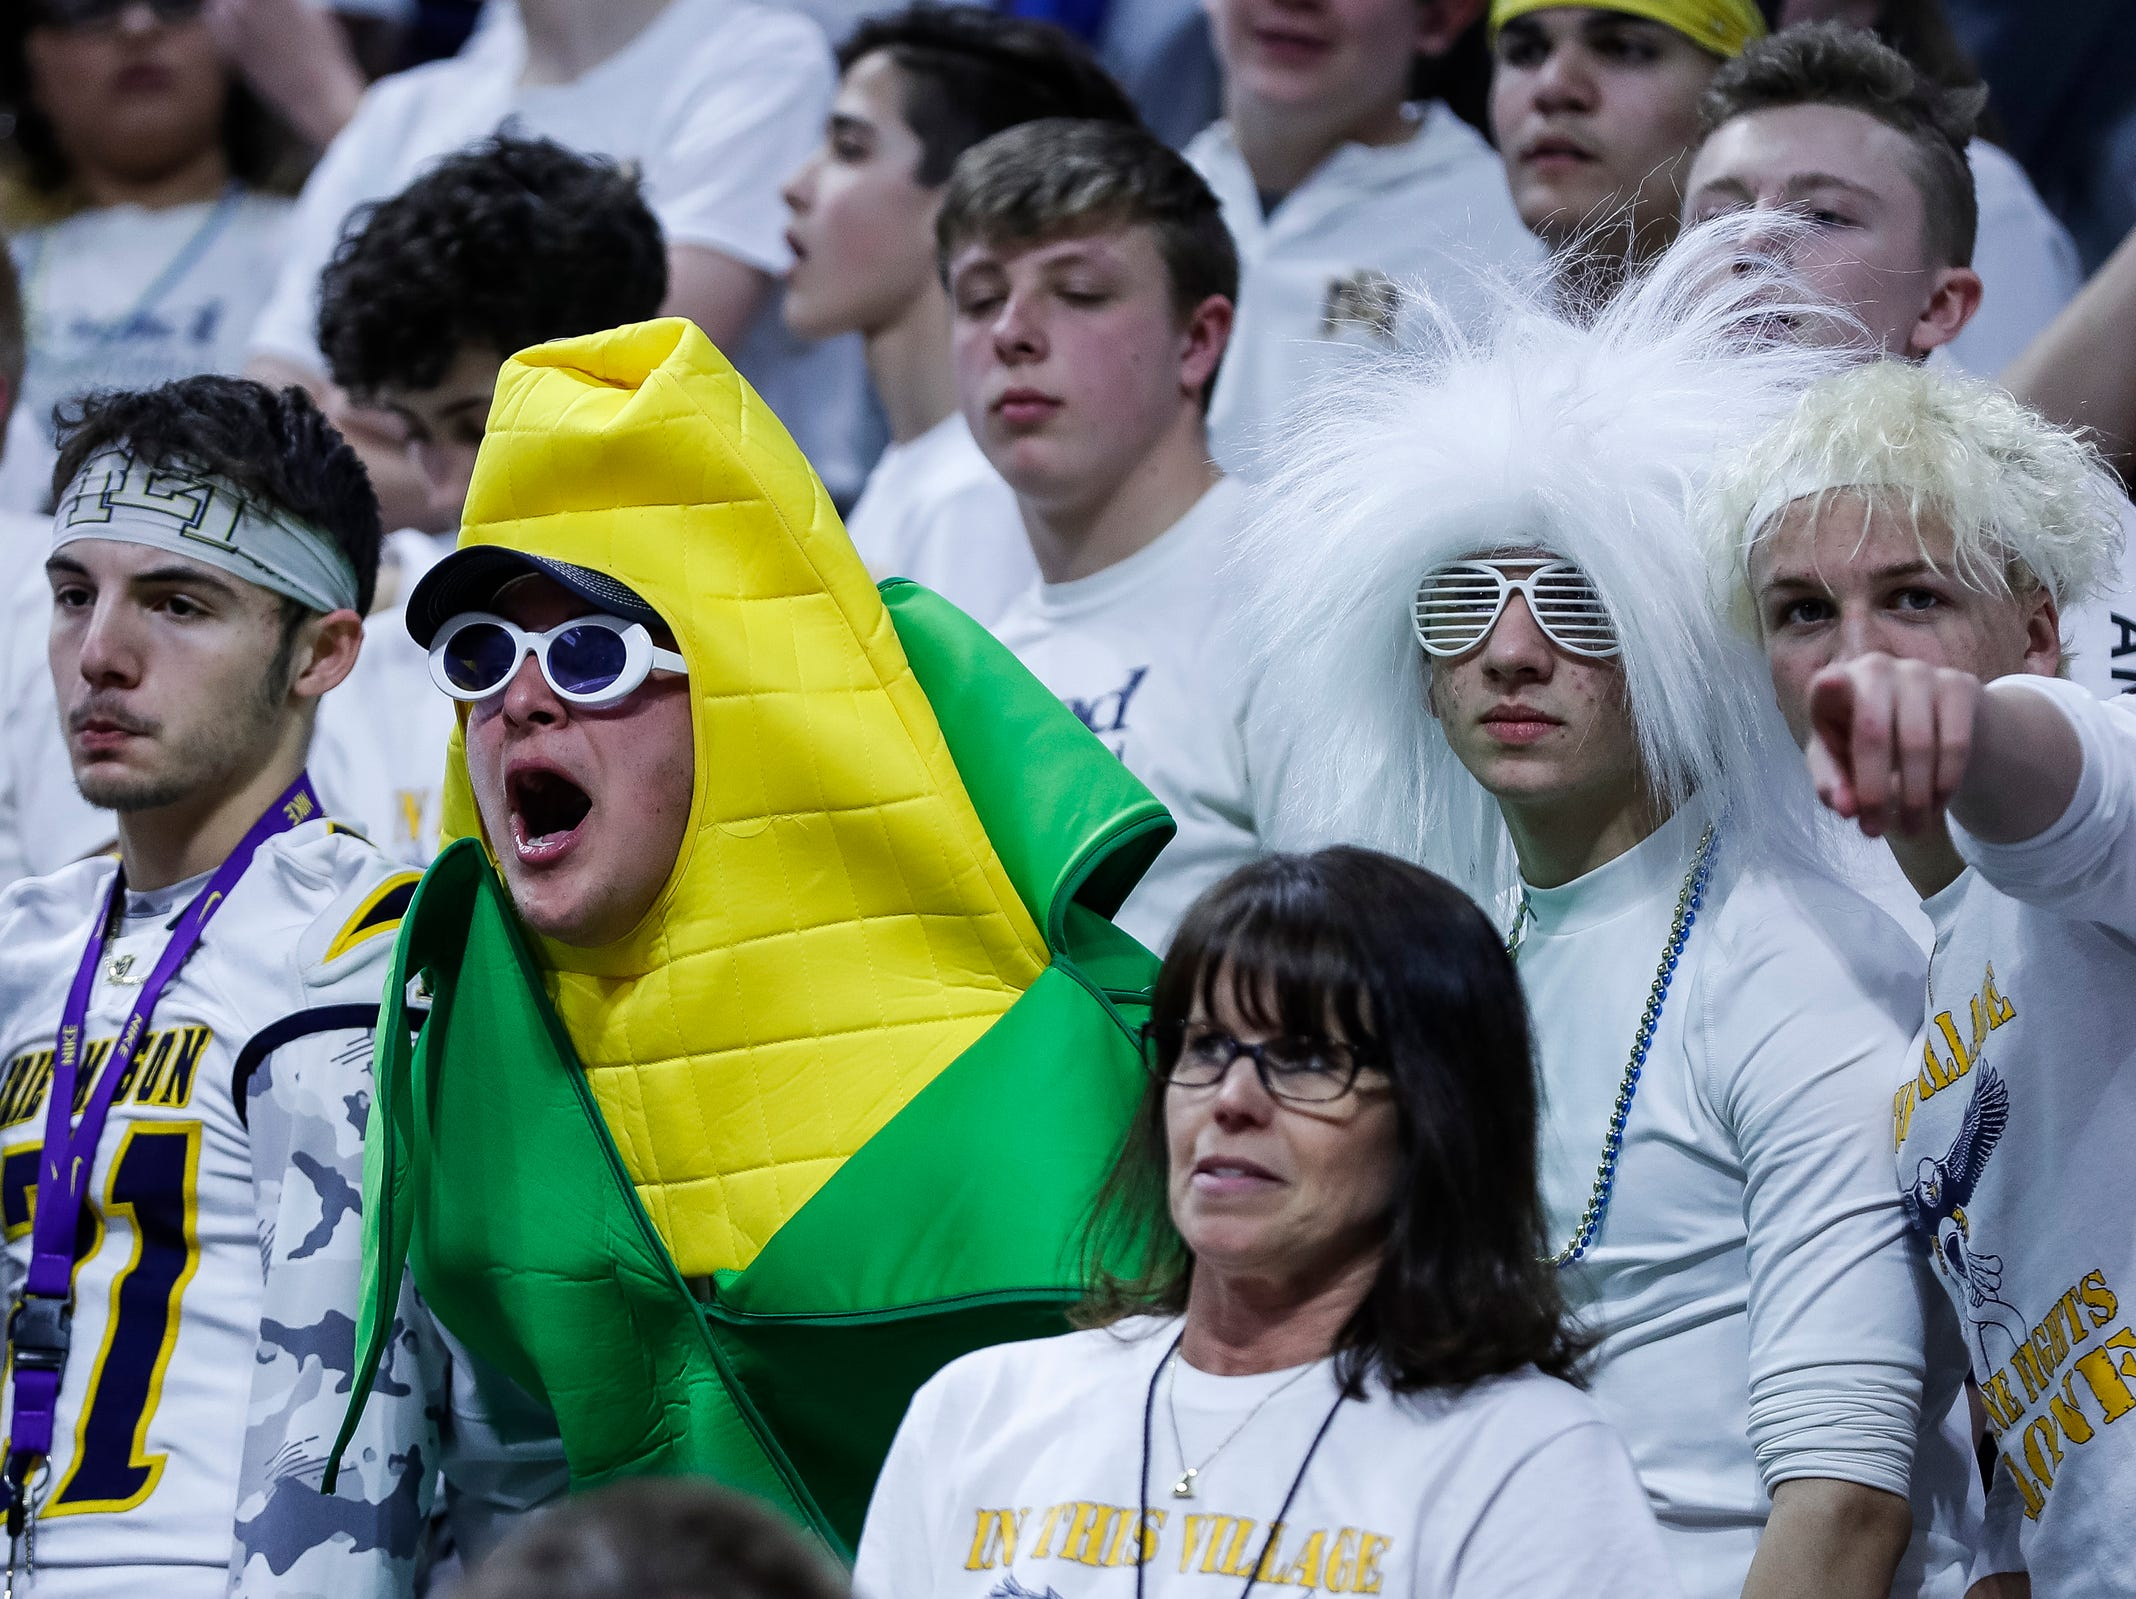 Erie-Mason fans cheer for the Eagles against Pewamo-Westphalia during the first half of MHSAA Division 3 semifinal at the Breslin Center in East Lansing, Thursday, March 14, 2019.